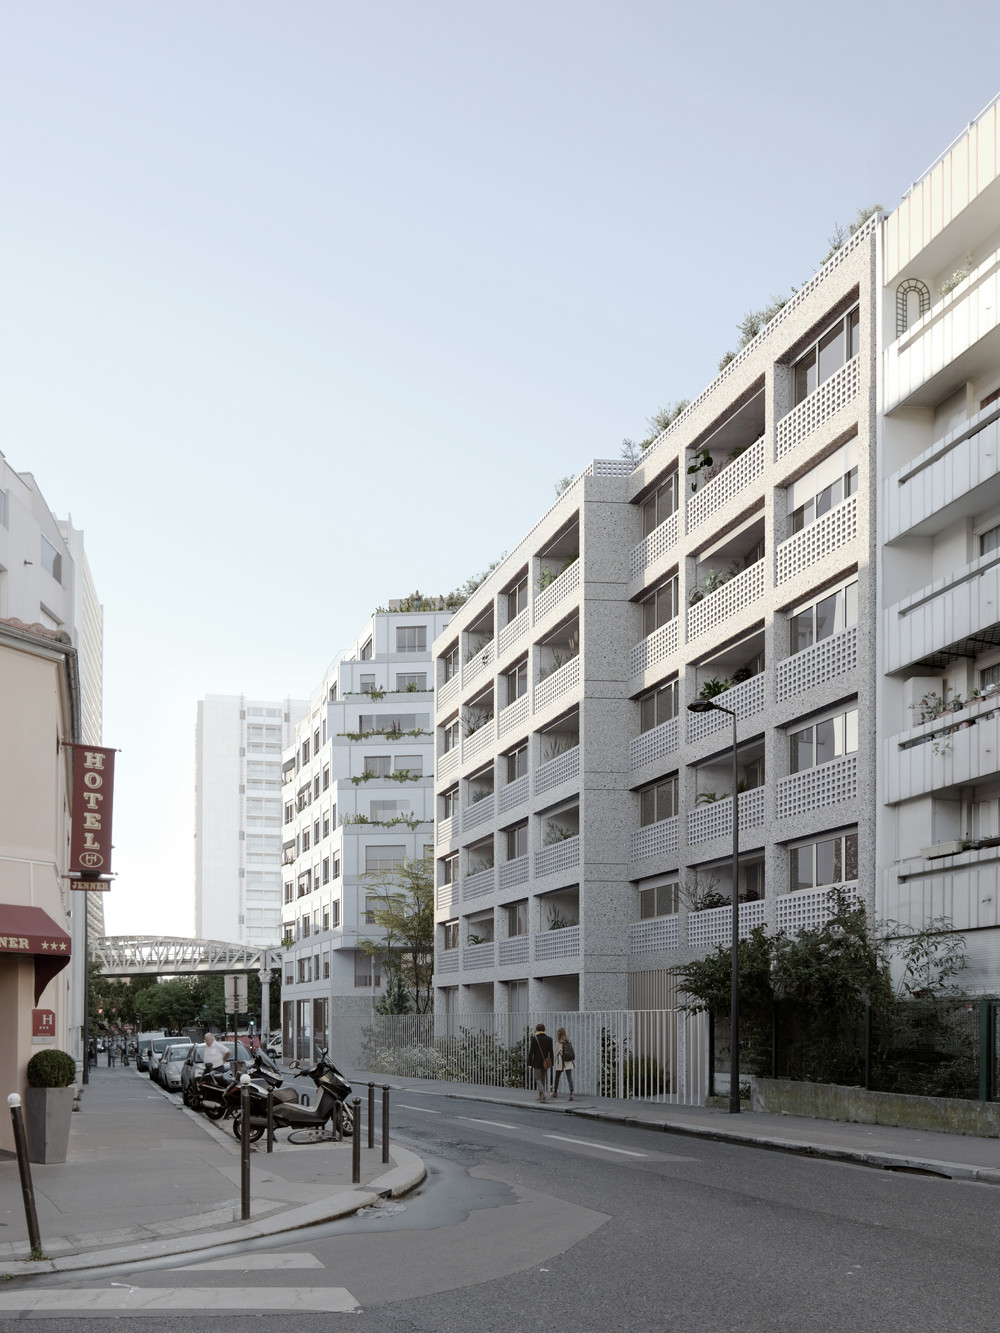 Blvd Auriol, Paris 13 - © JKLN Architecte